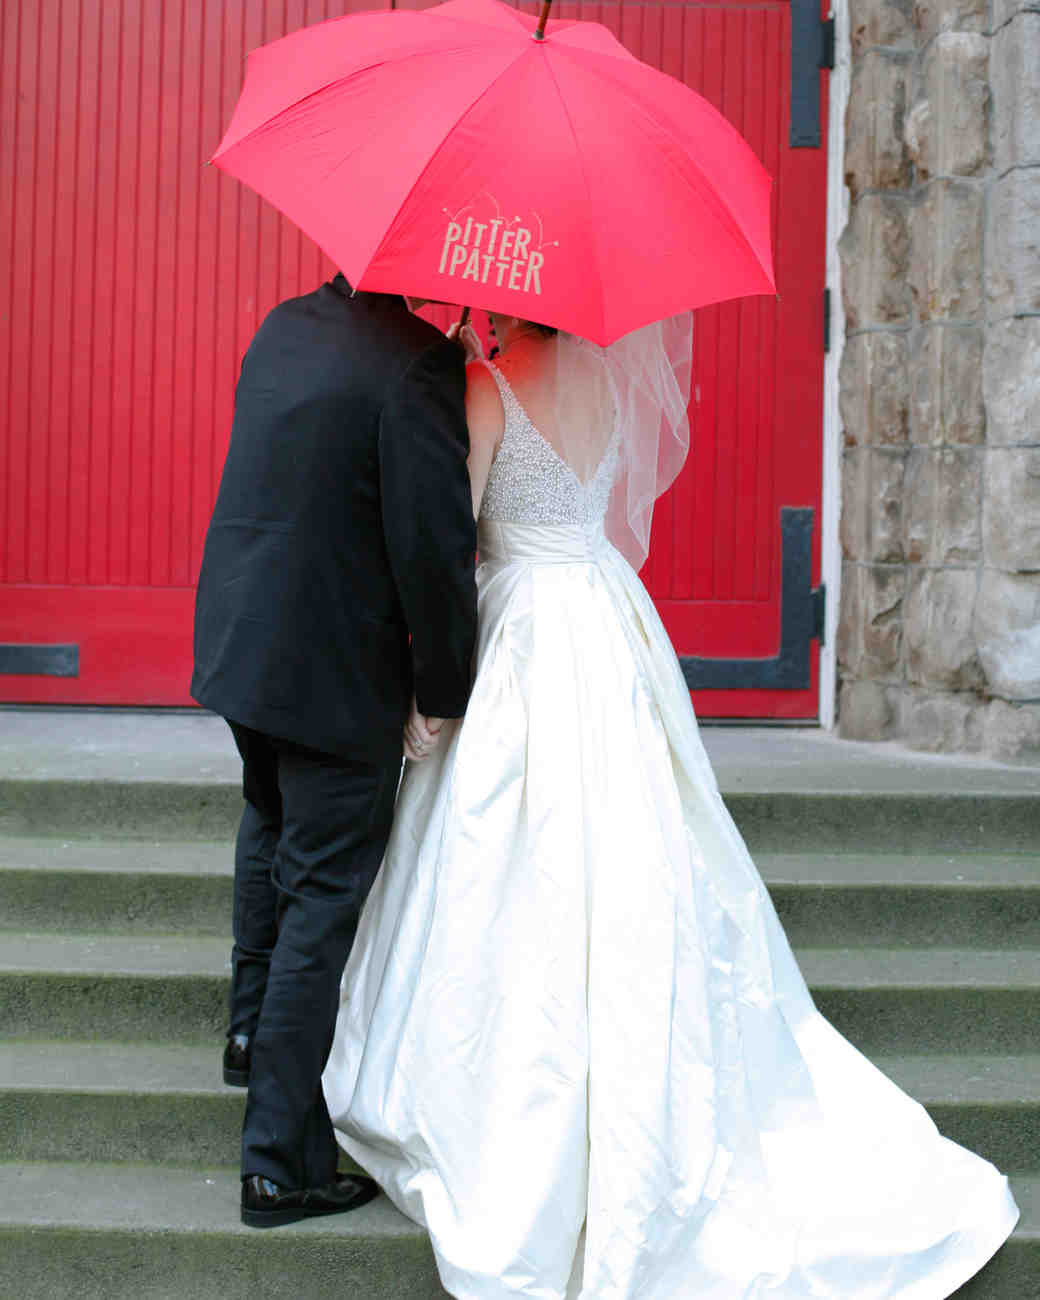 bride groom umbrella